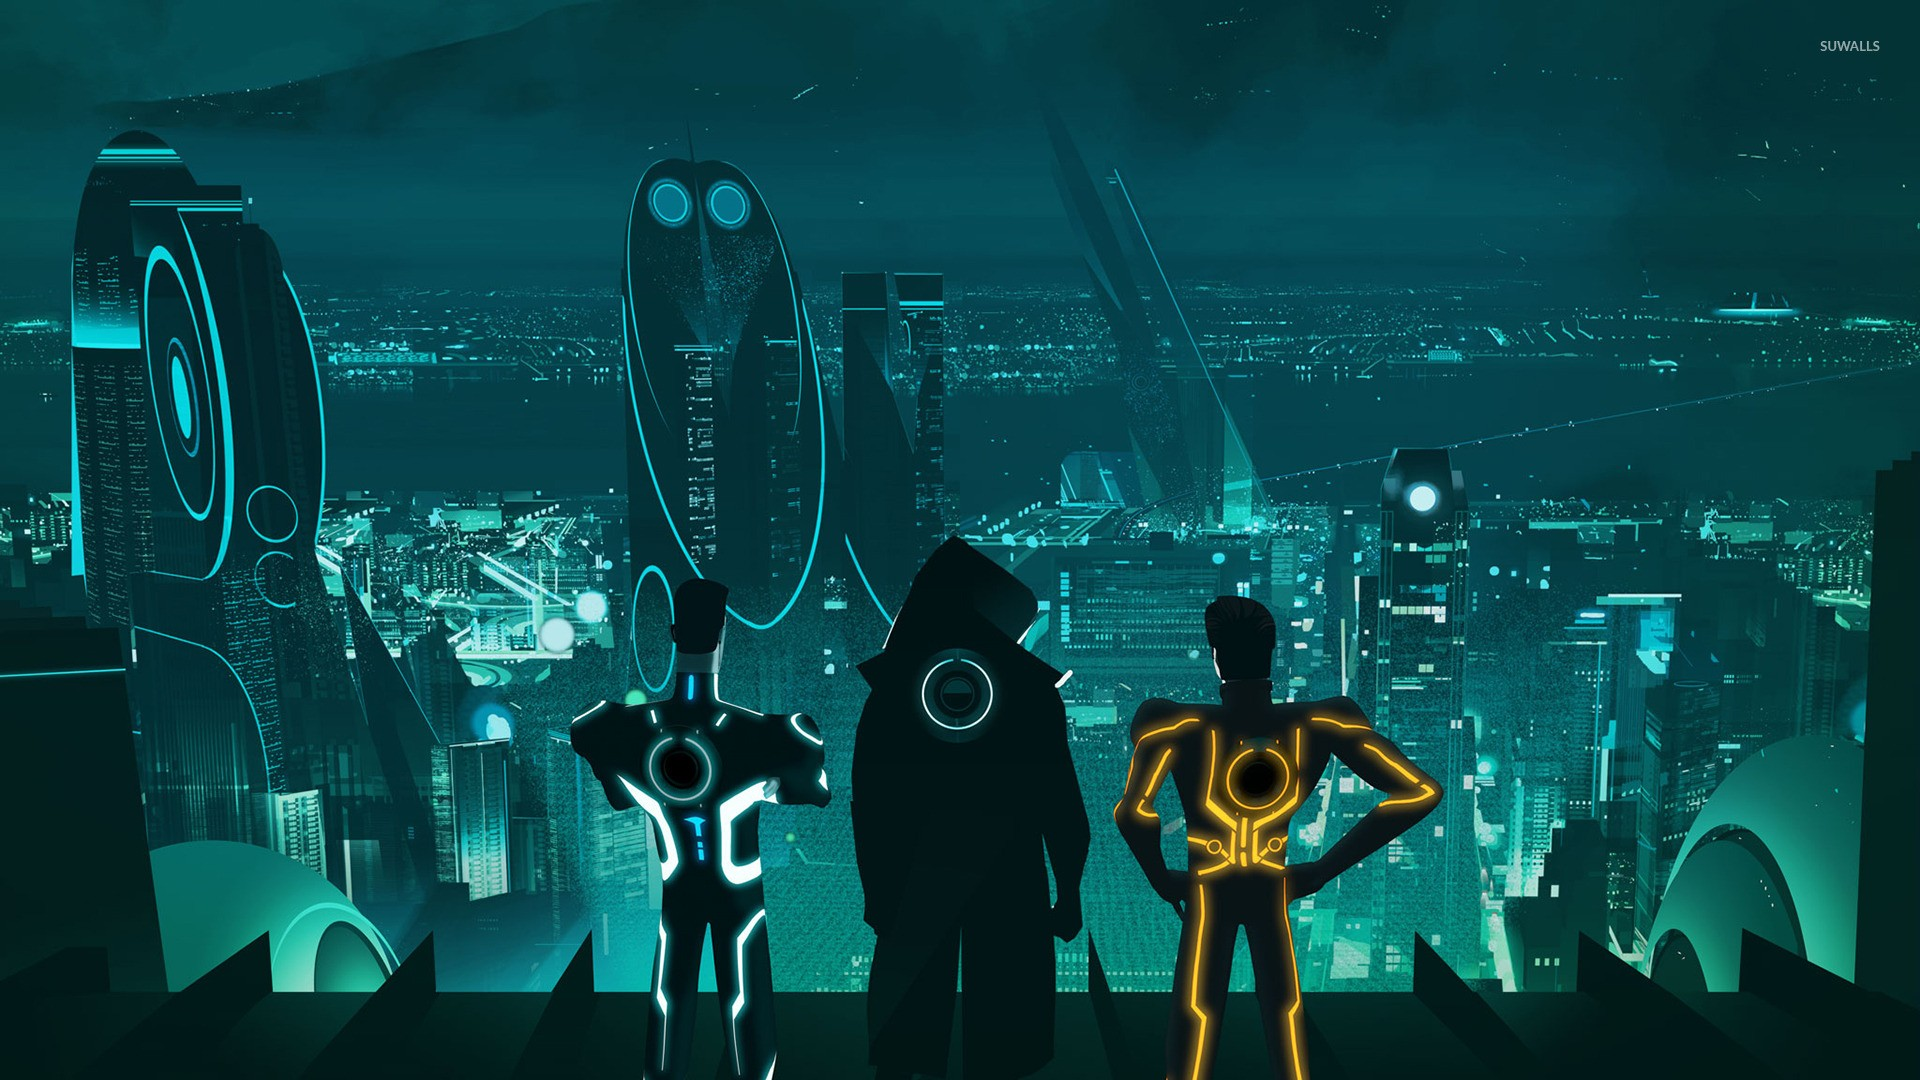 tron wallpaper ·① download free awesome full hd wallpapers for